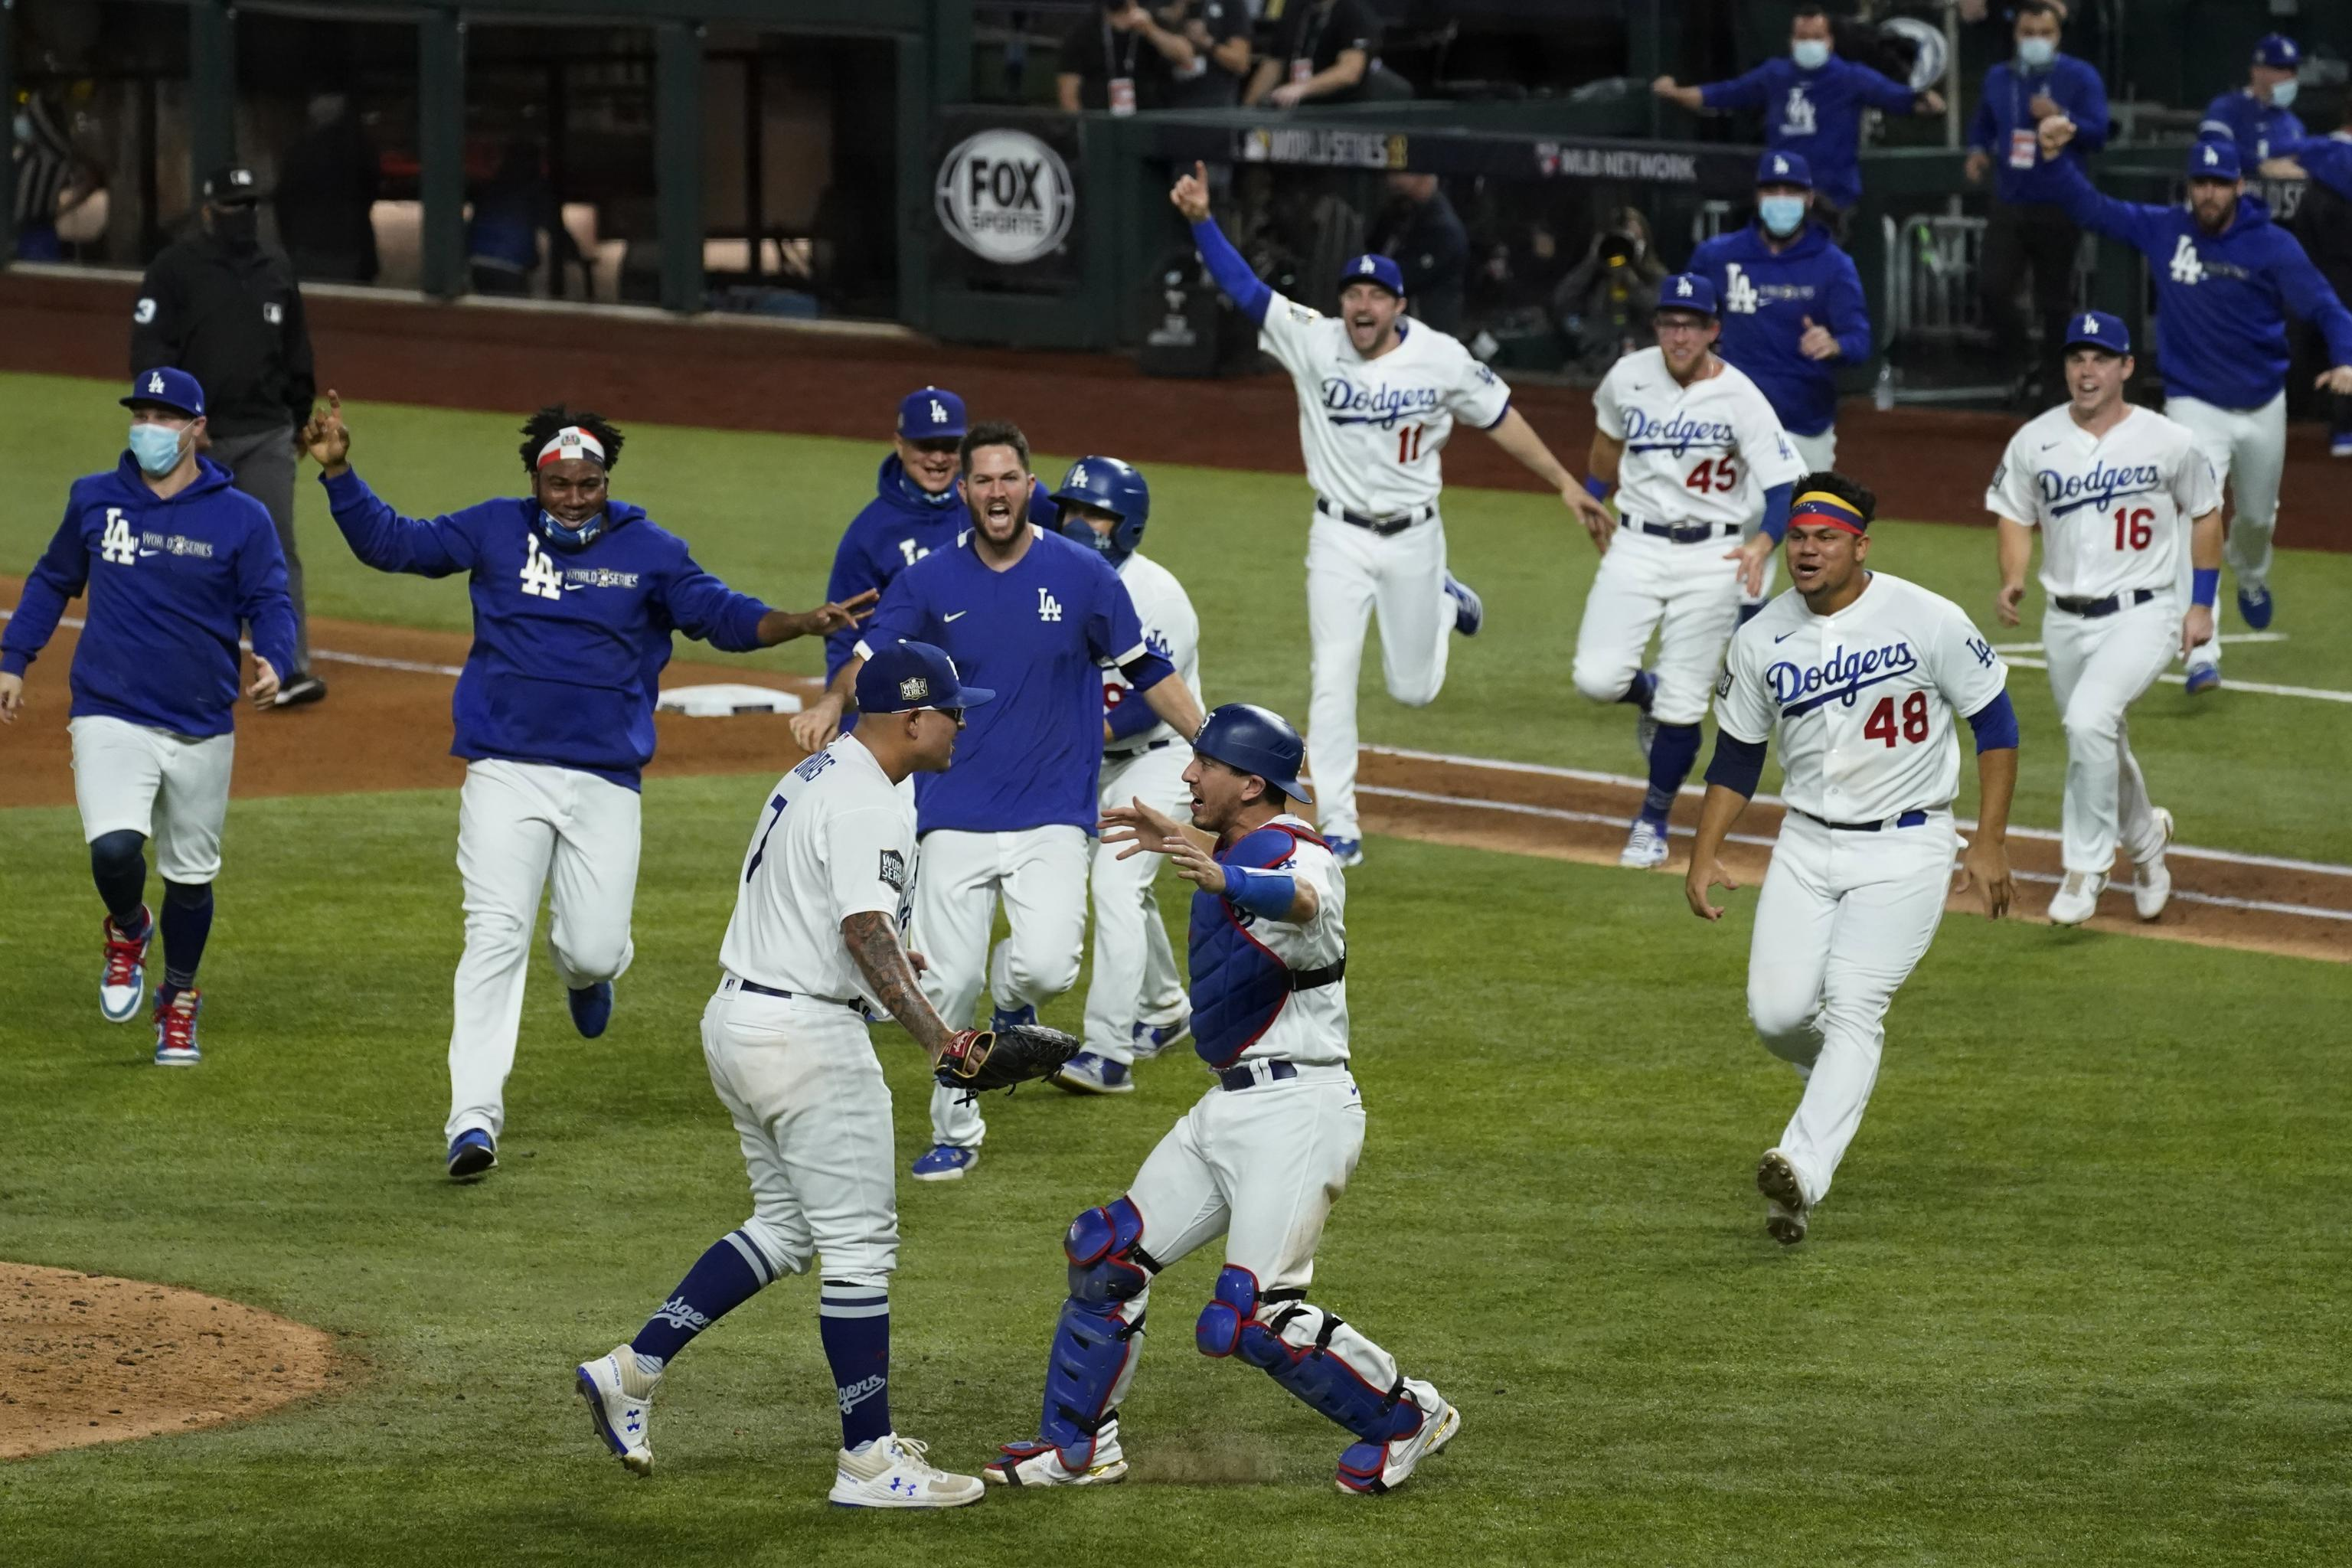 Dodgers Win 2020 World Series: Highlights, Twitter Reaction to Celebration  | Bleacher Report | Latest News, Videos and Highlights